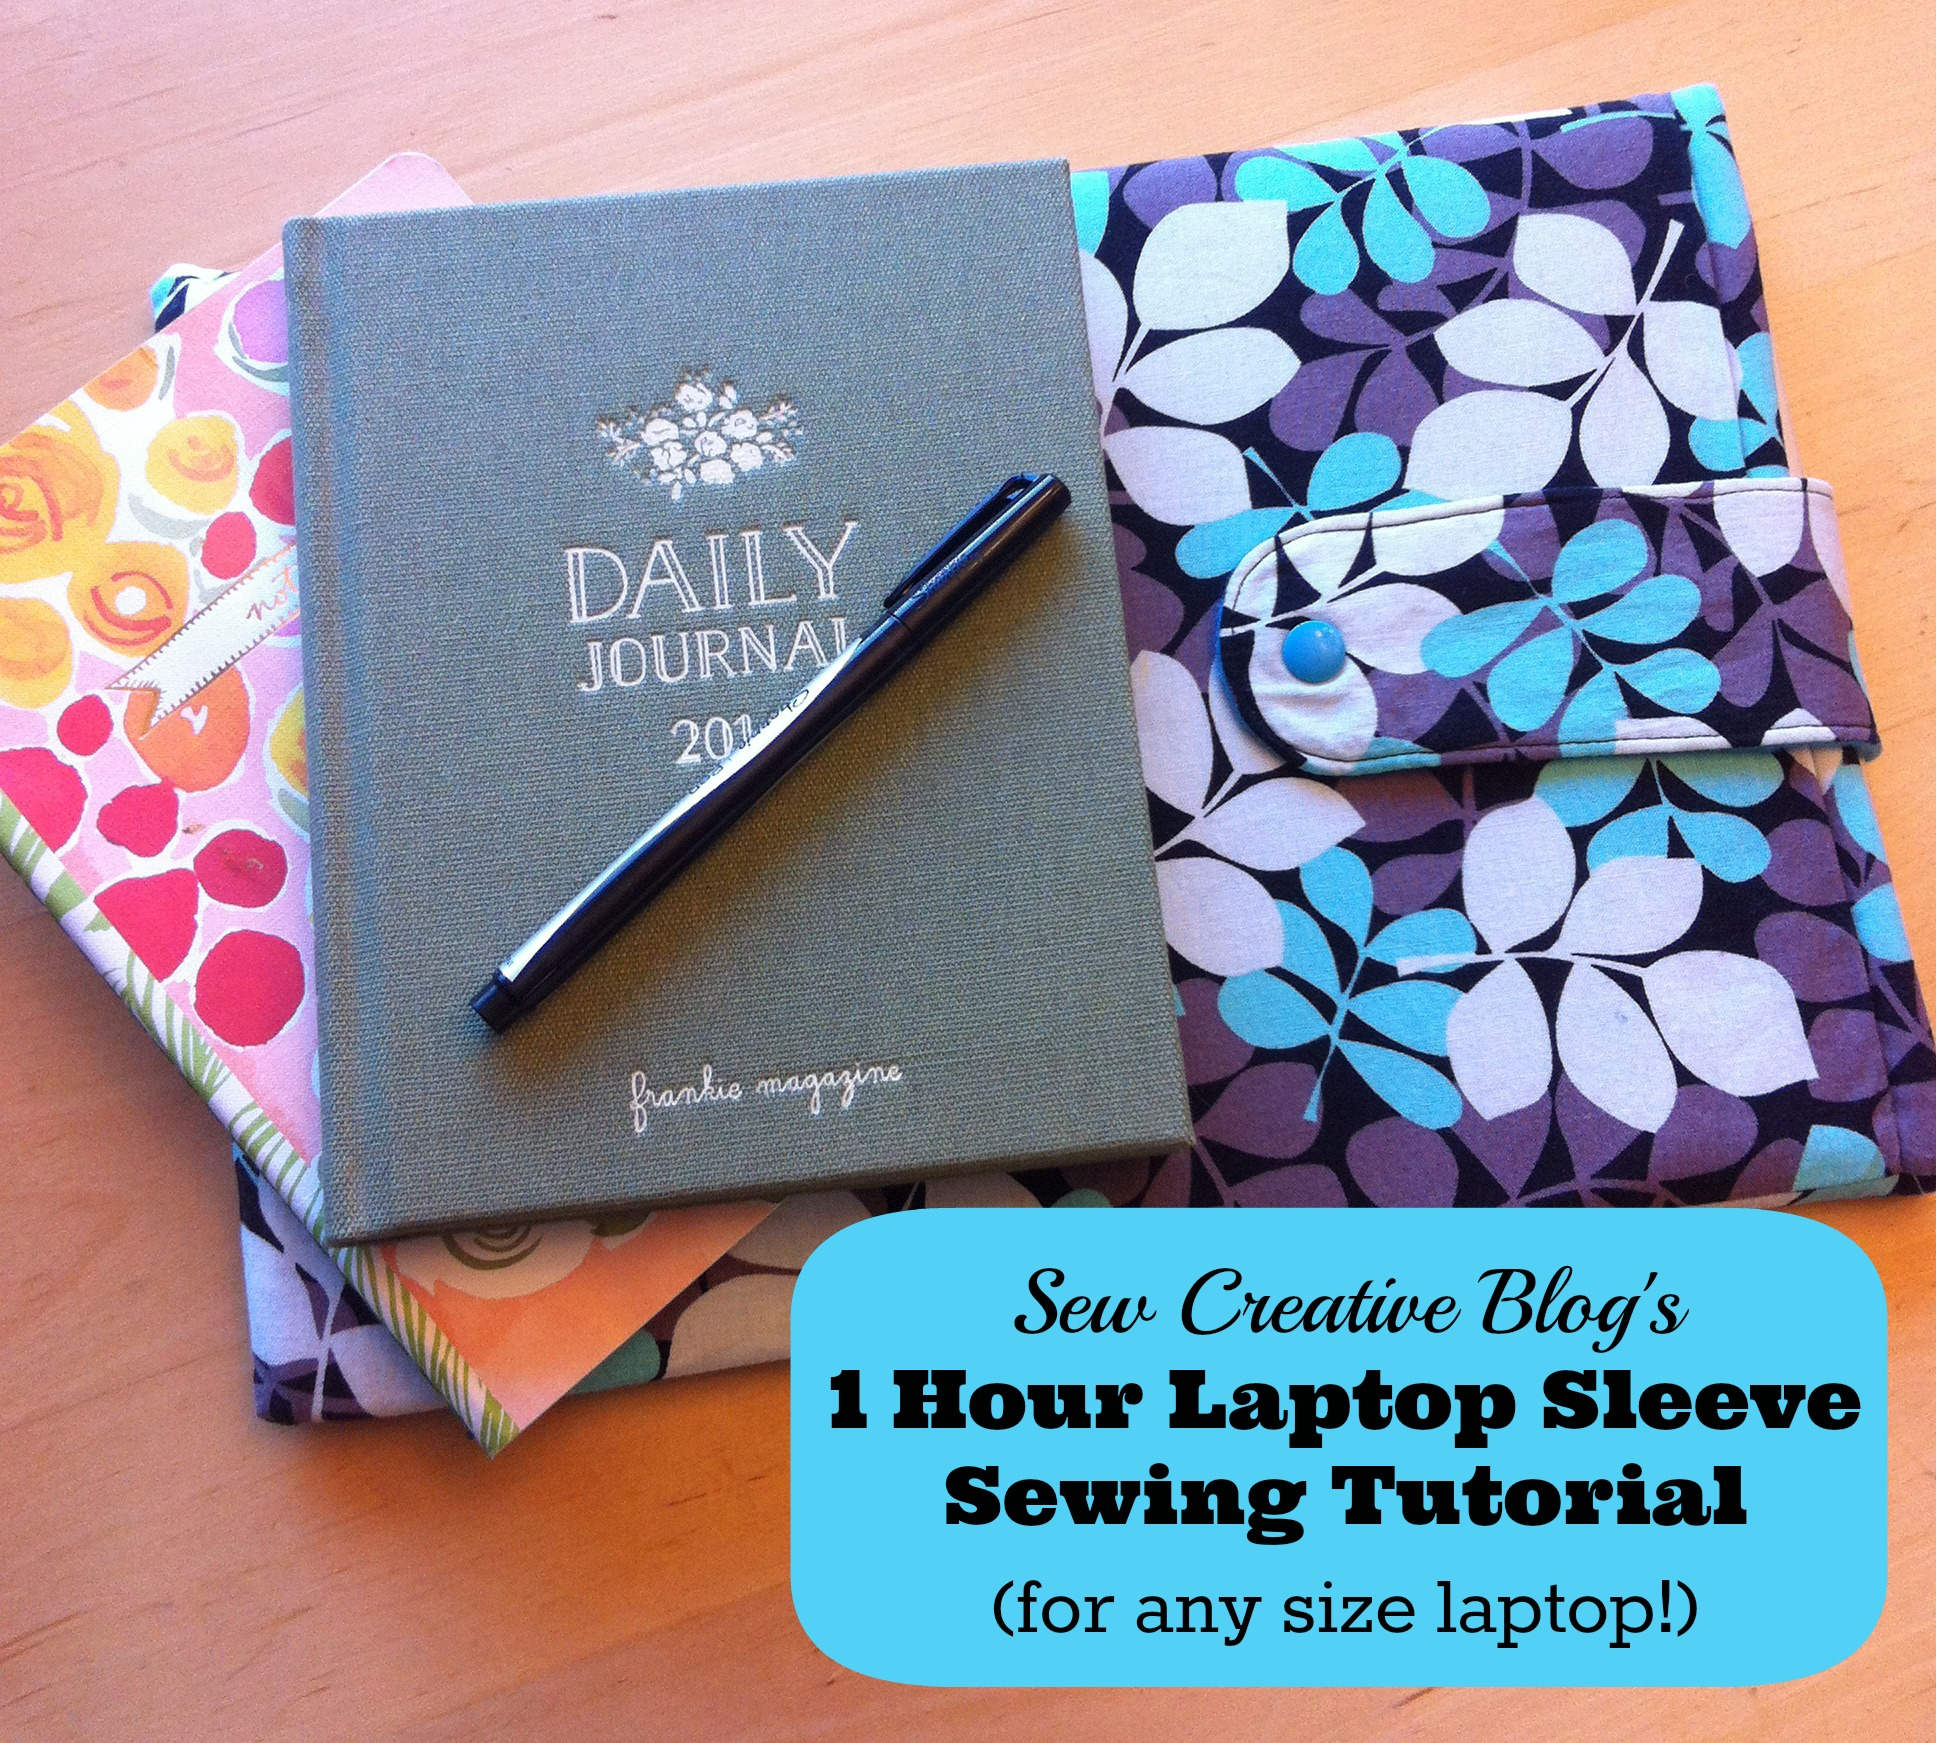 1 Hour DIY Laptop Sleeve Sewing Tutorial For Any Size Laptop